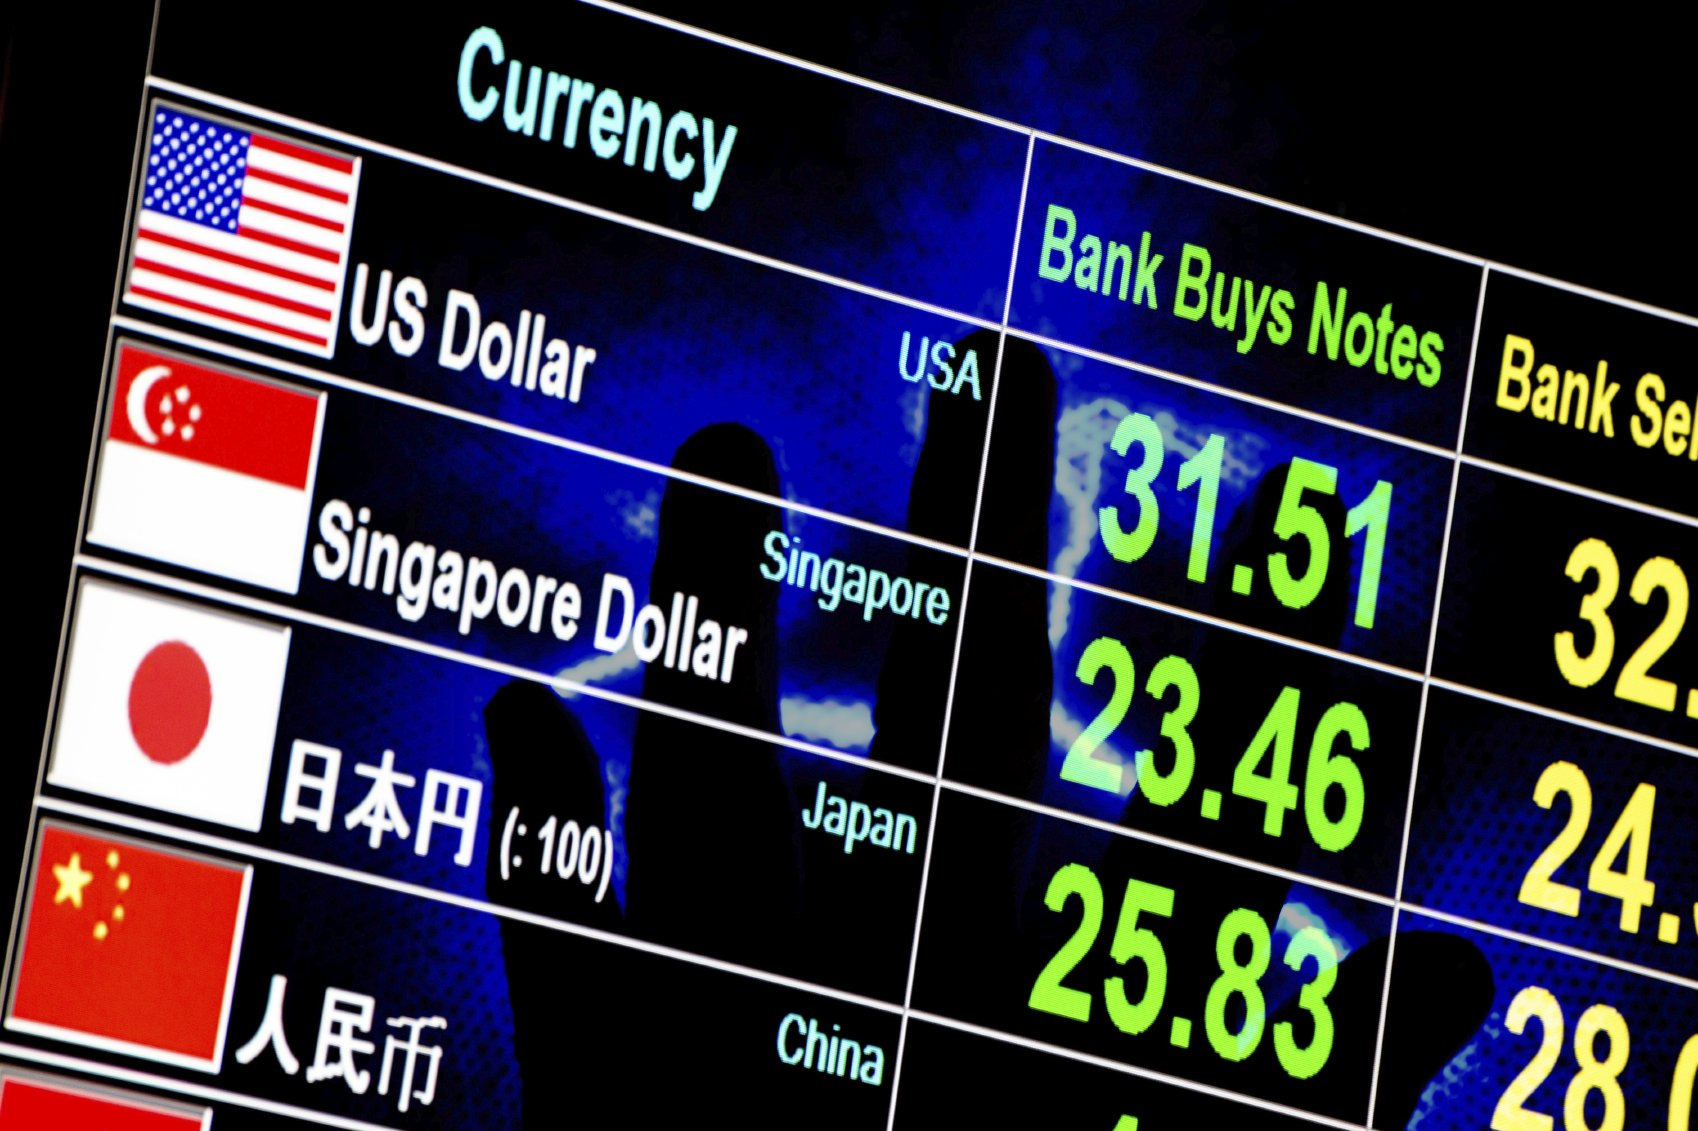 How do currency exchanges work